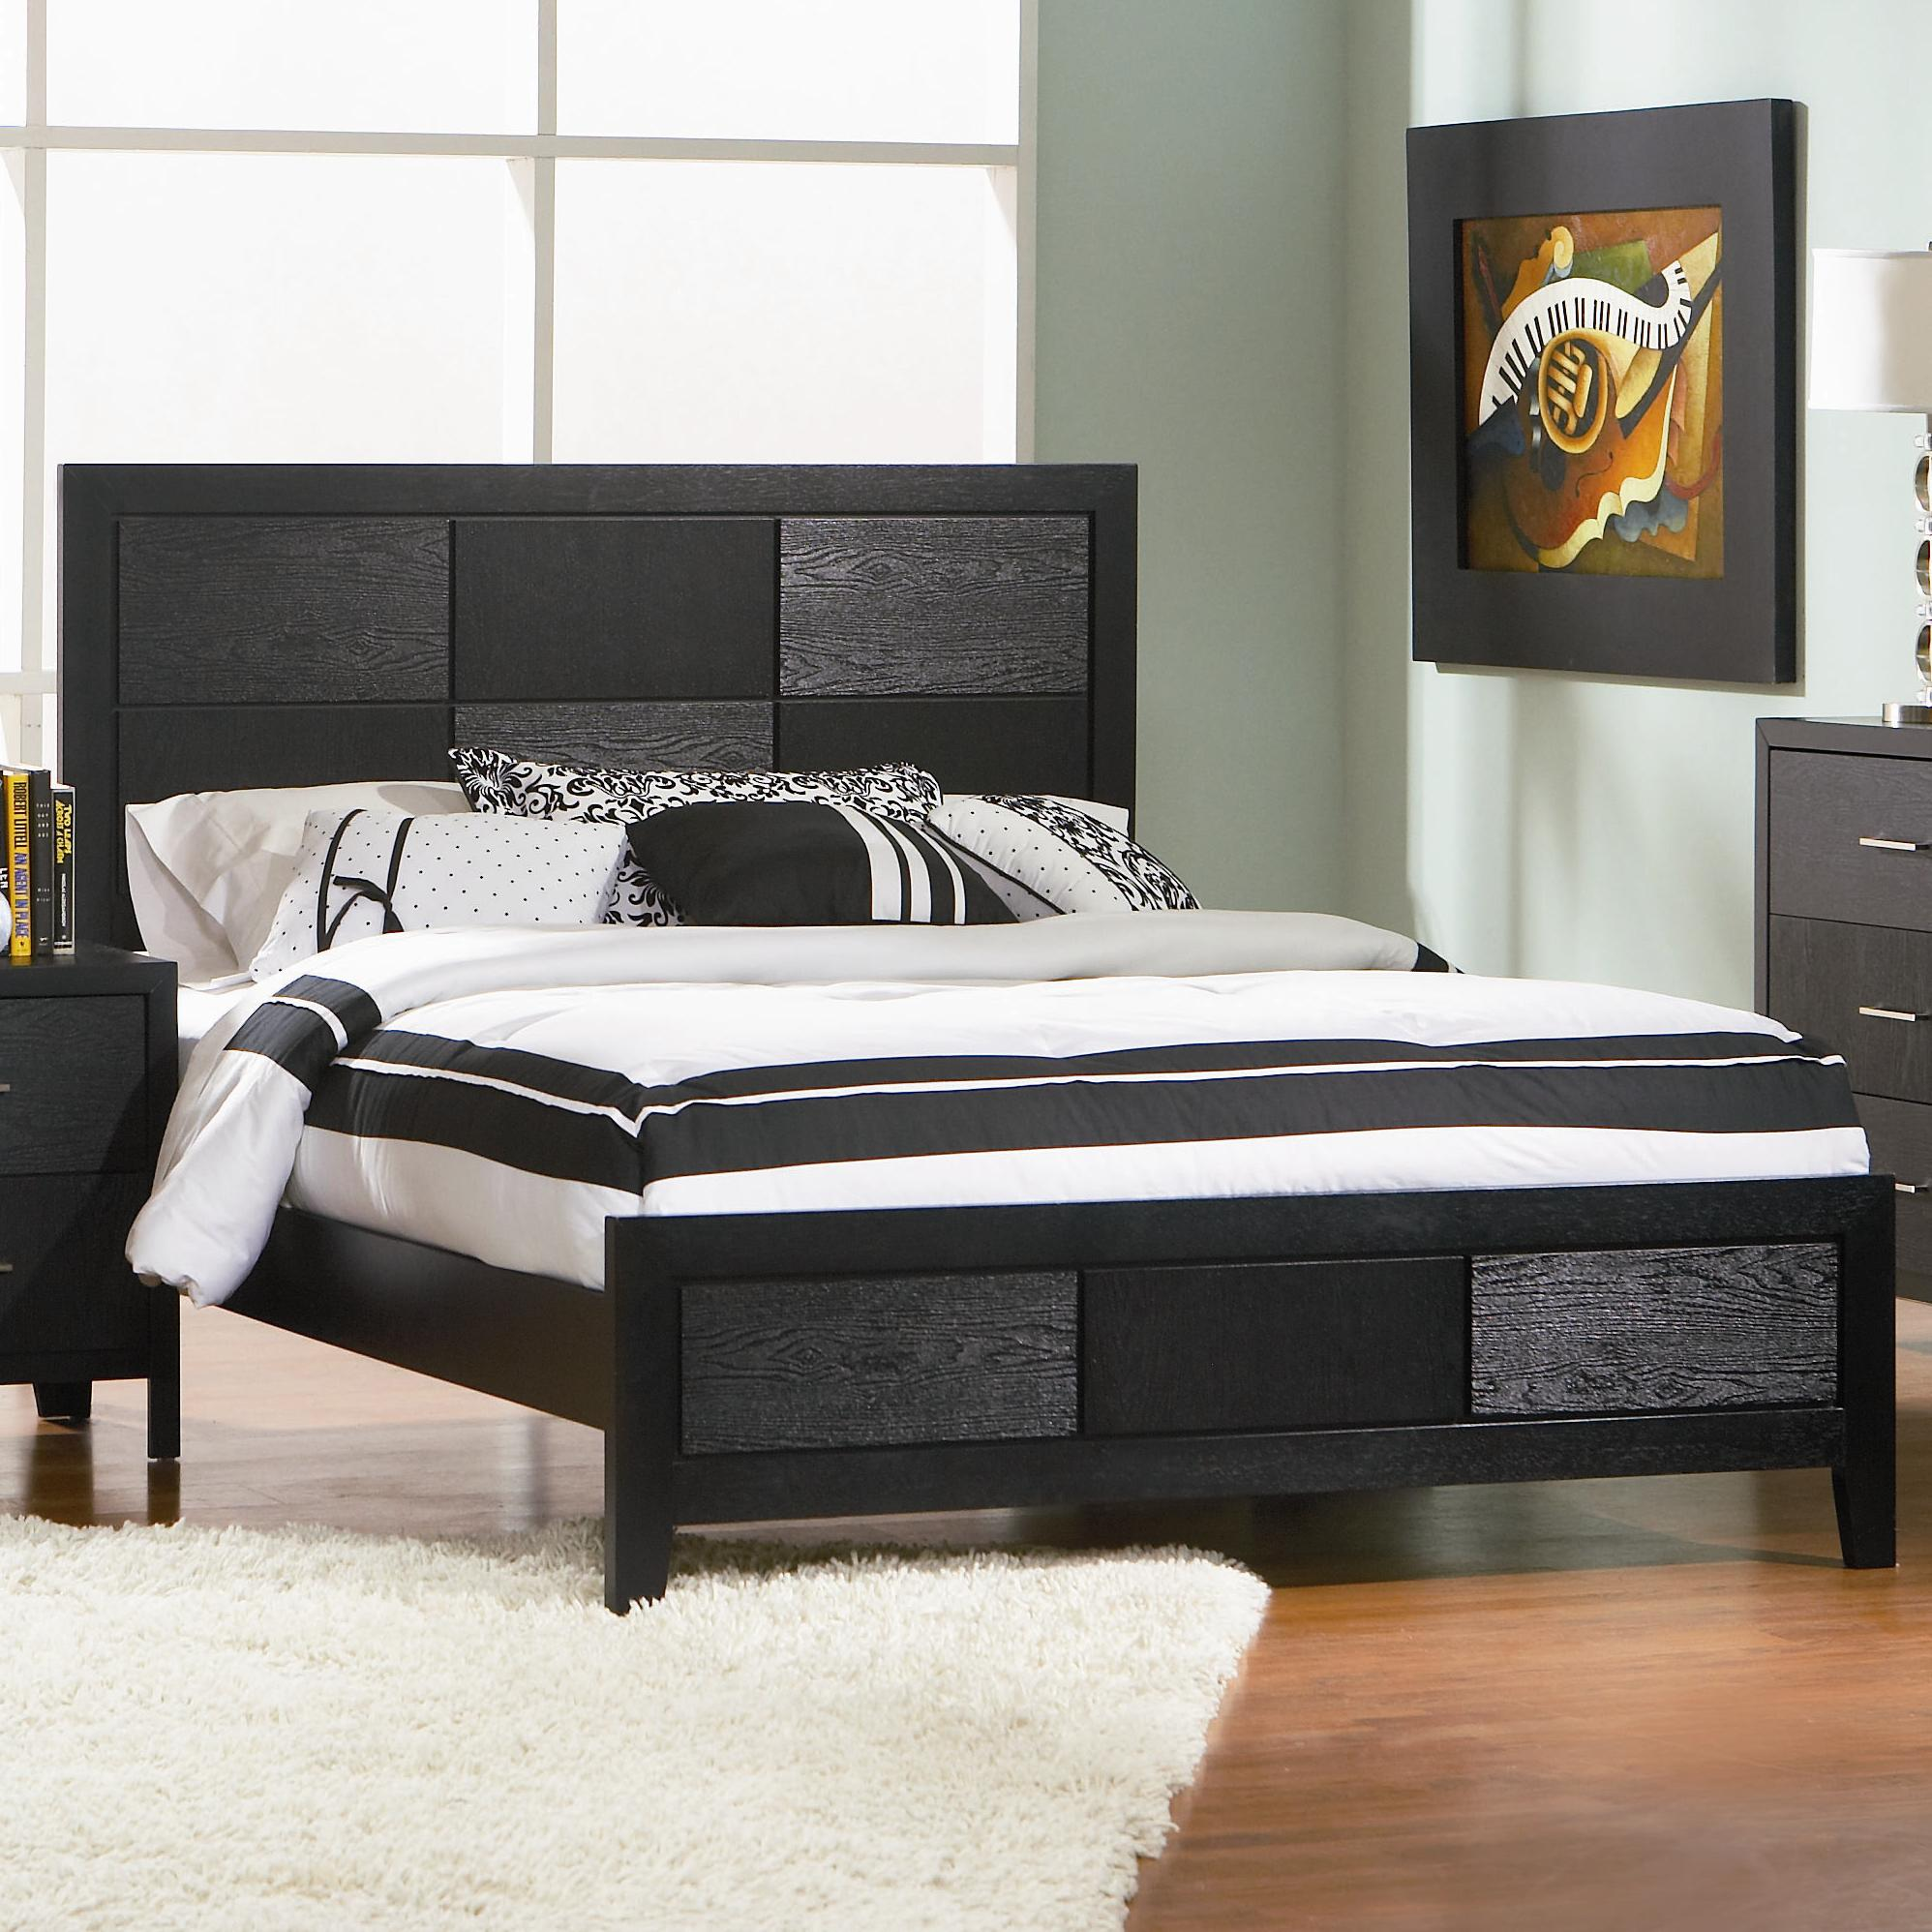 Coaster Transitional Cal King Bed With Black Finish 201651kw For Sale Online Ebay